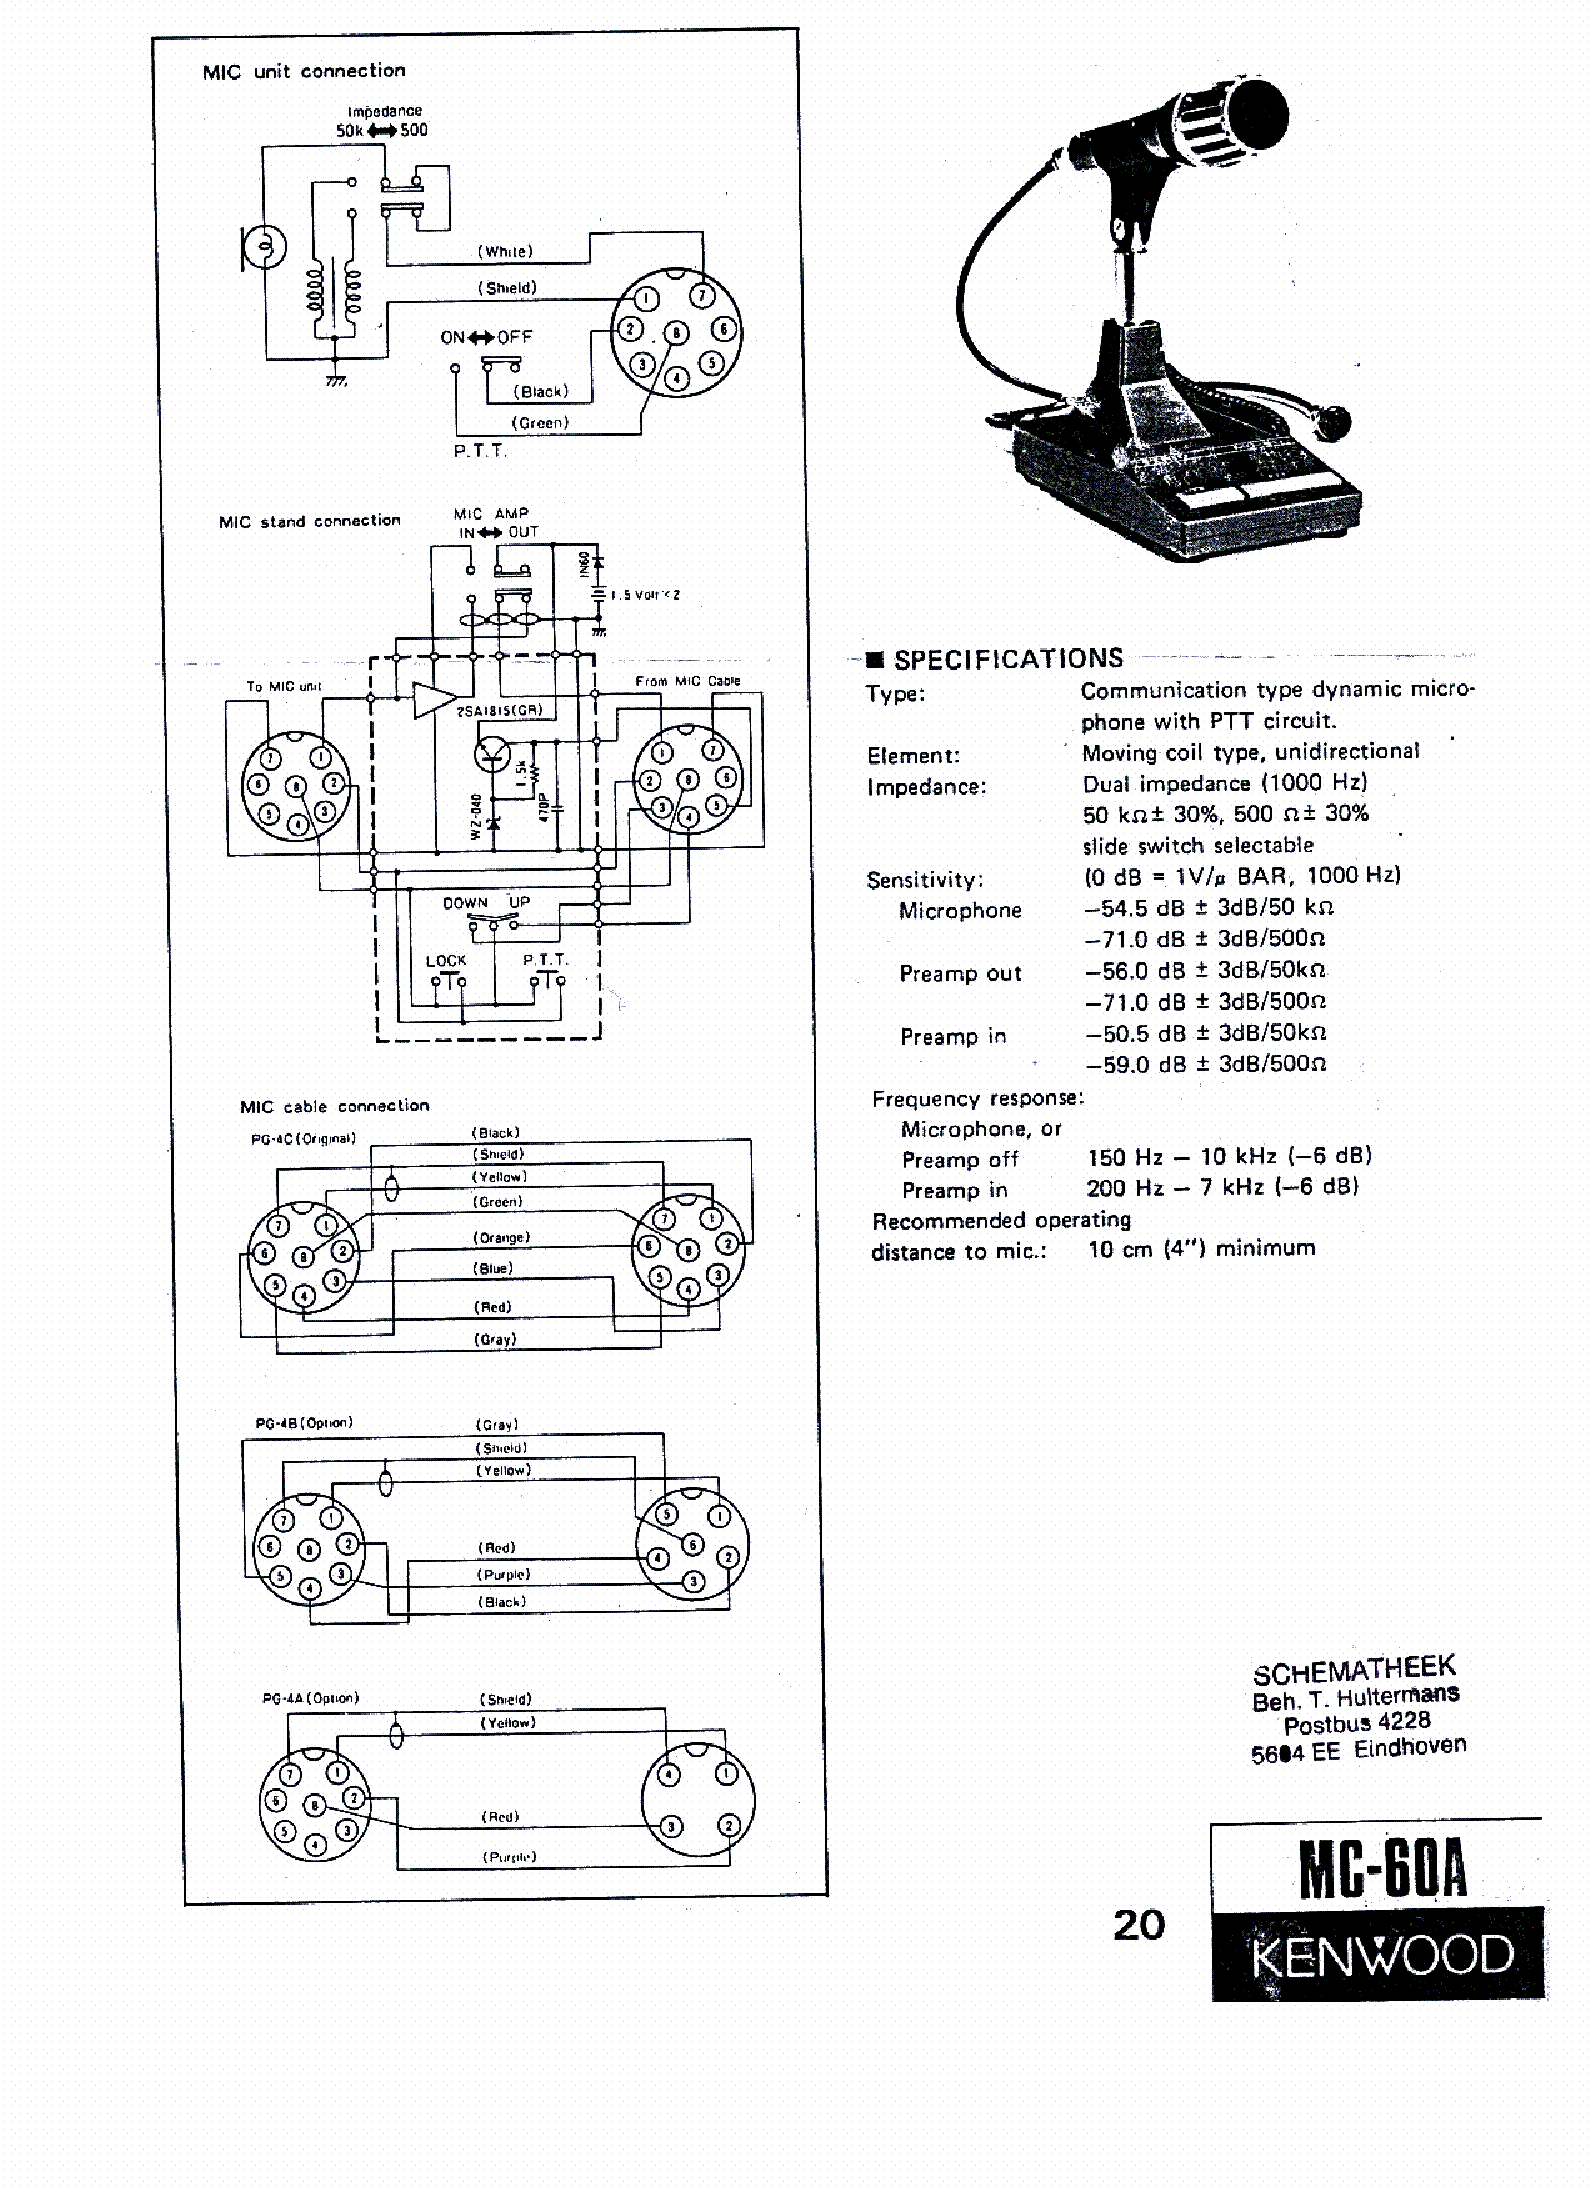 kenwood_mc 60a_sch.pdf_1 kenwood mc 60a sch service manual download, schematics, eeprom mc 60 wiring diagram at reclaimingppi.co